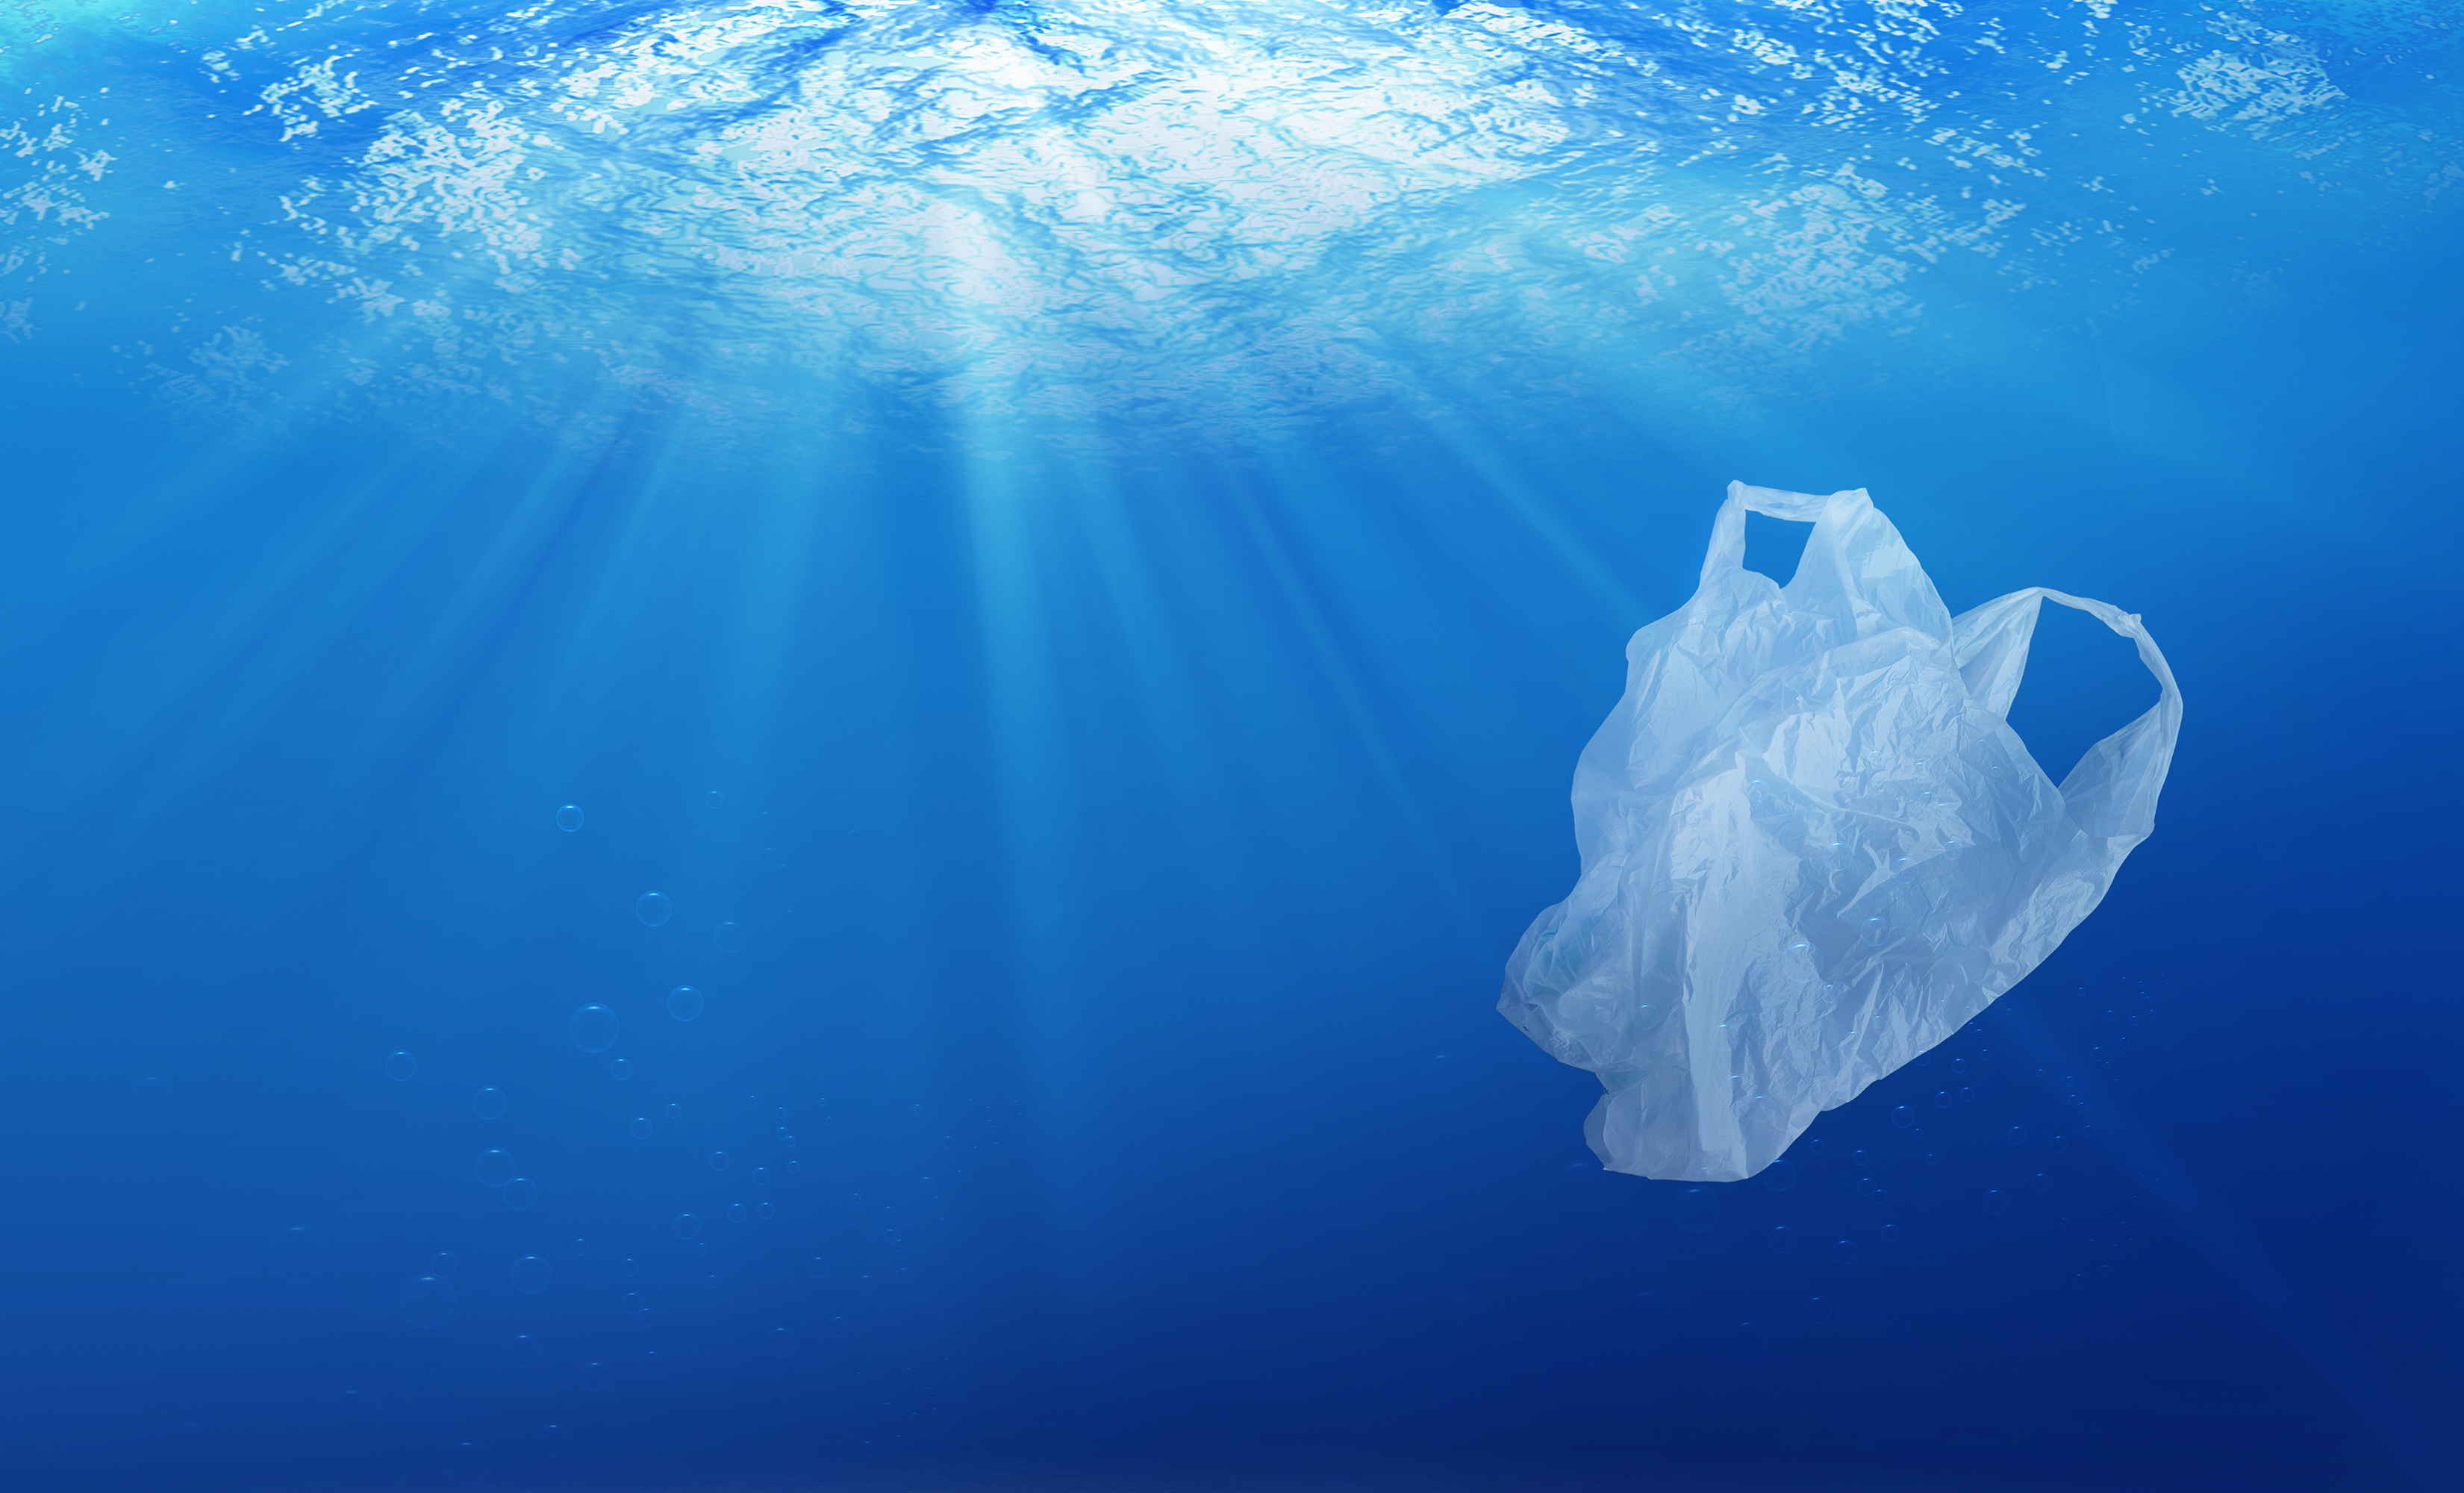 Panama Just Became the First Central American Country to Implement a Ban on Single-Use Plastic Bags